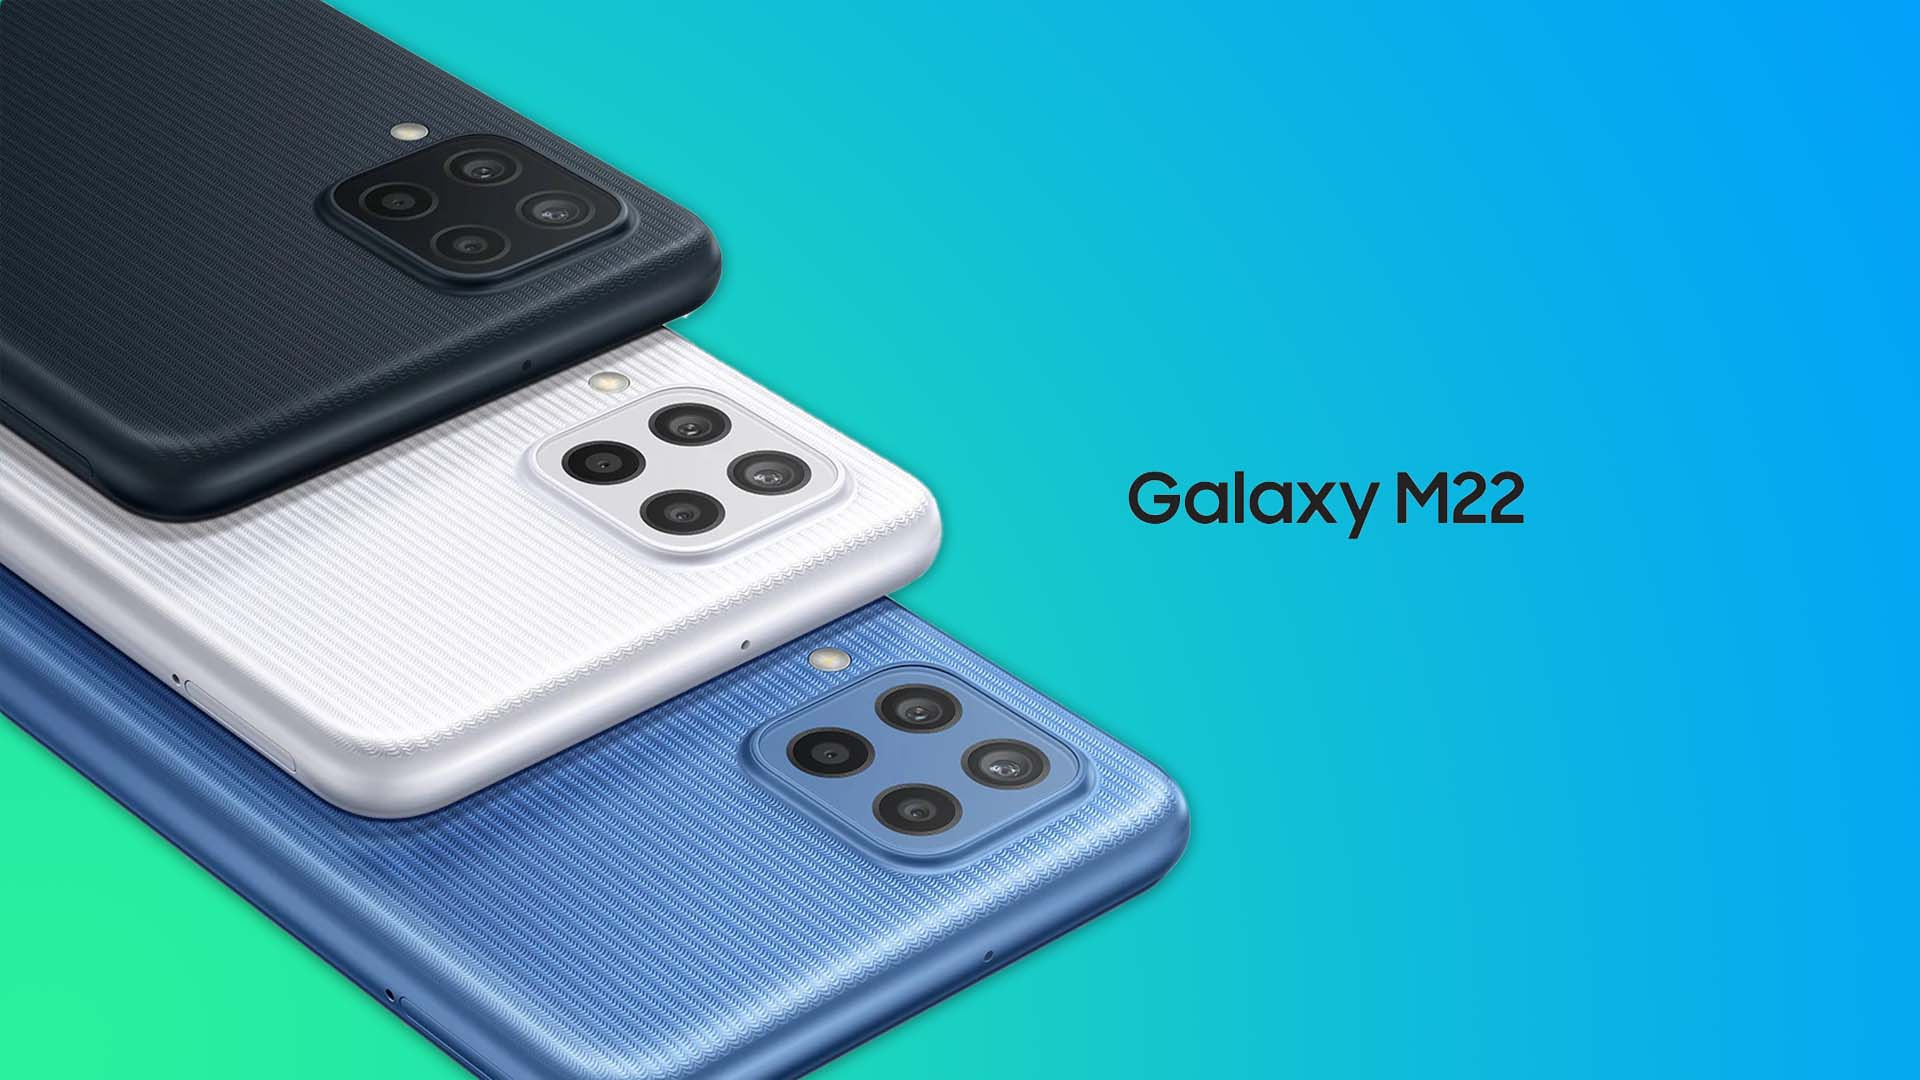 Galaxy M22 goes official with a 90Hz Super AMOLED show and a quad-camera arrangement